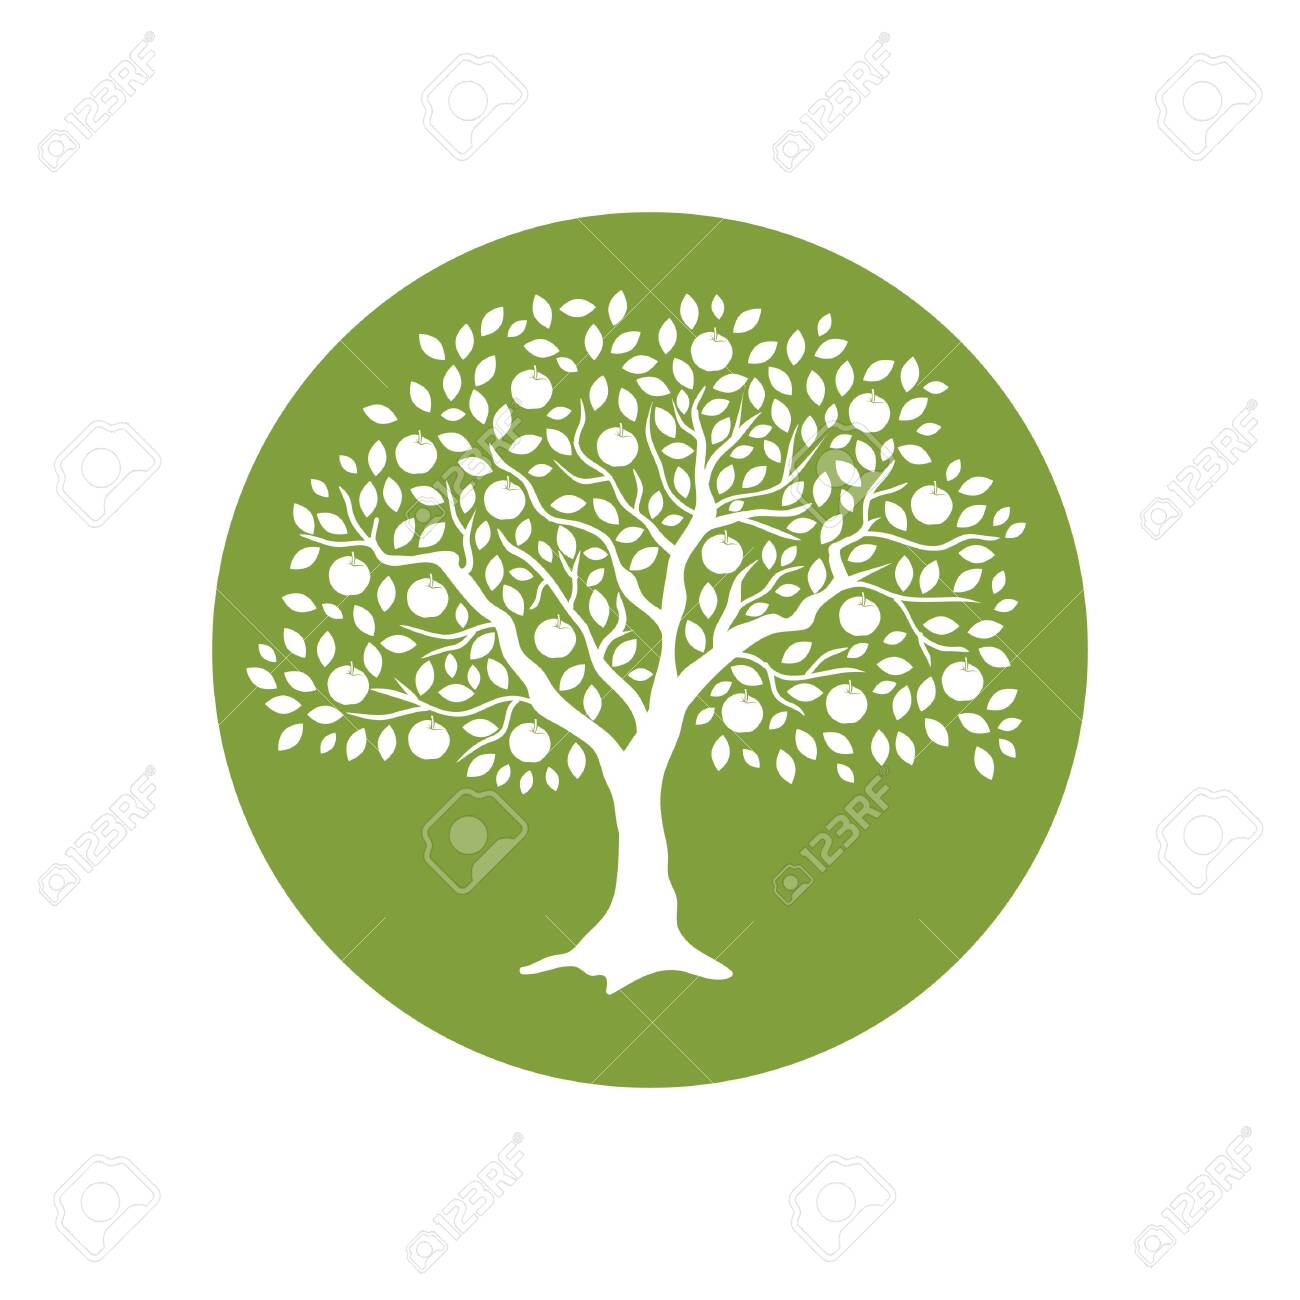 Apple Tree Logo Icon Royalty Free Cliparts Vectors And Stock Illustration Image 136277749